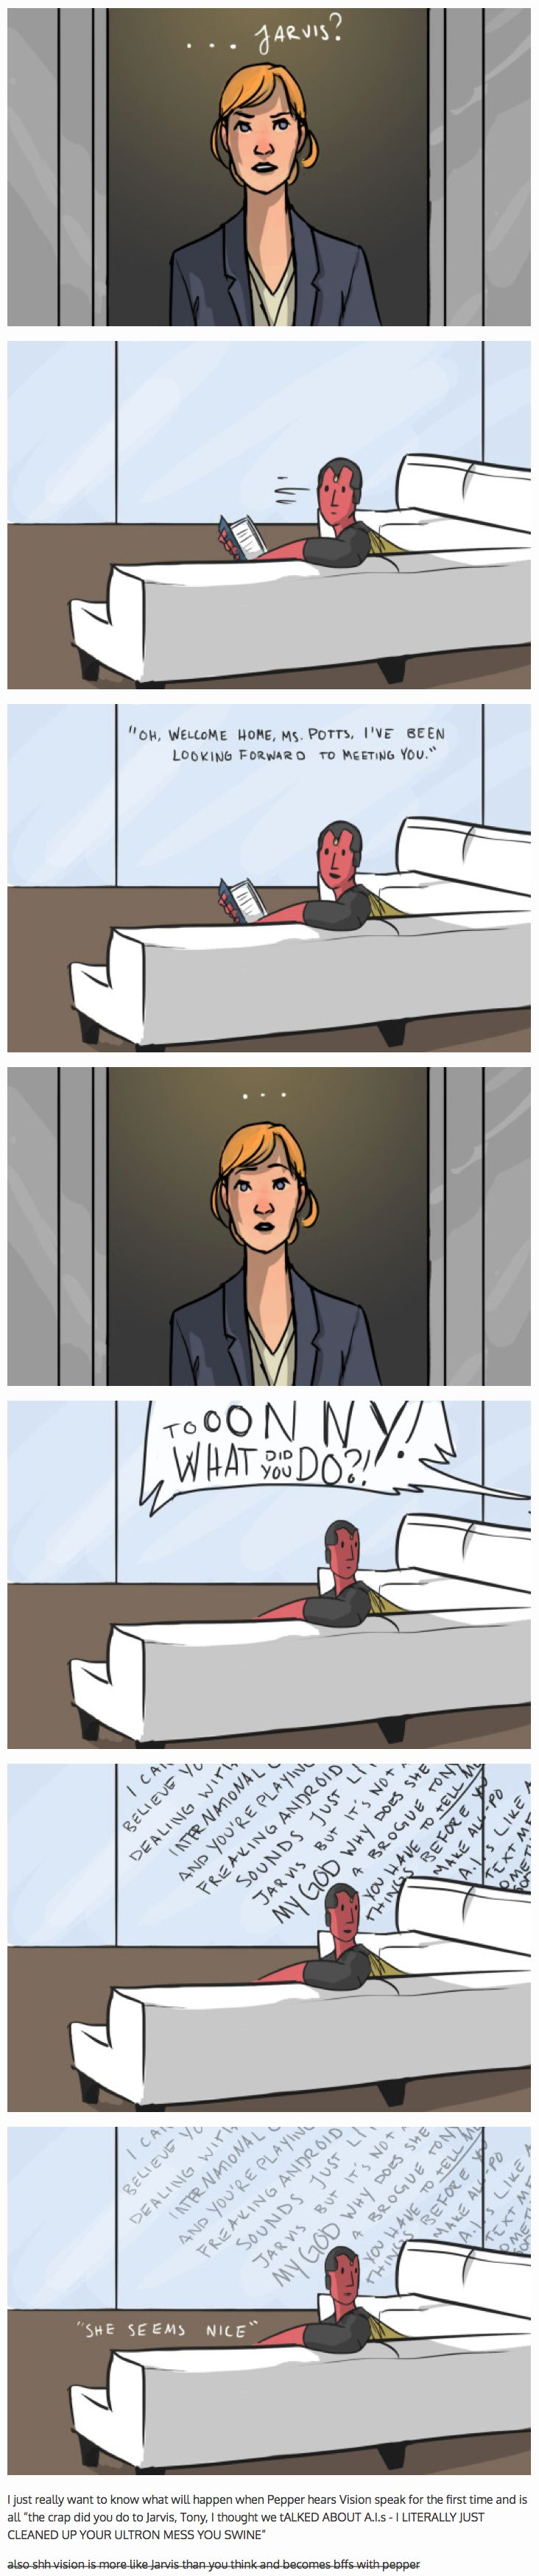 When Pepper meets Vision || Pepper Potts, Vision || #fanedit #humor